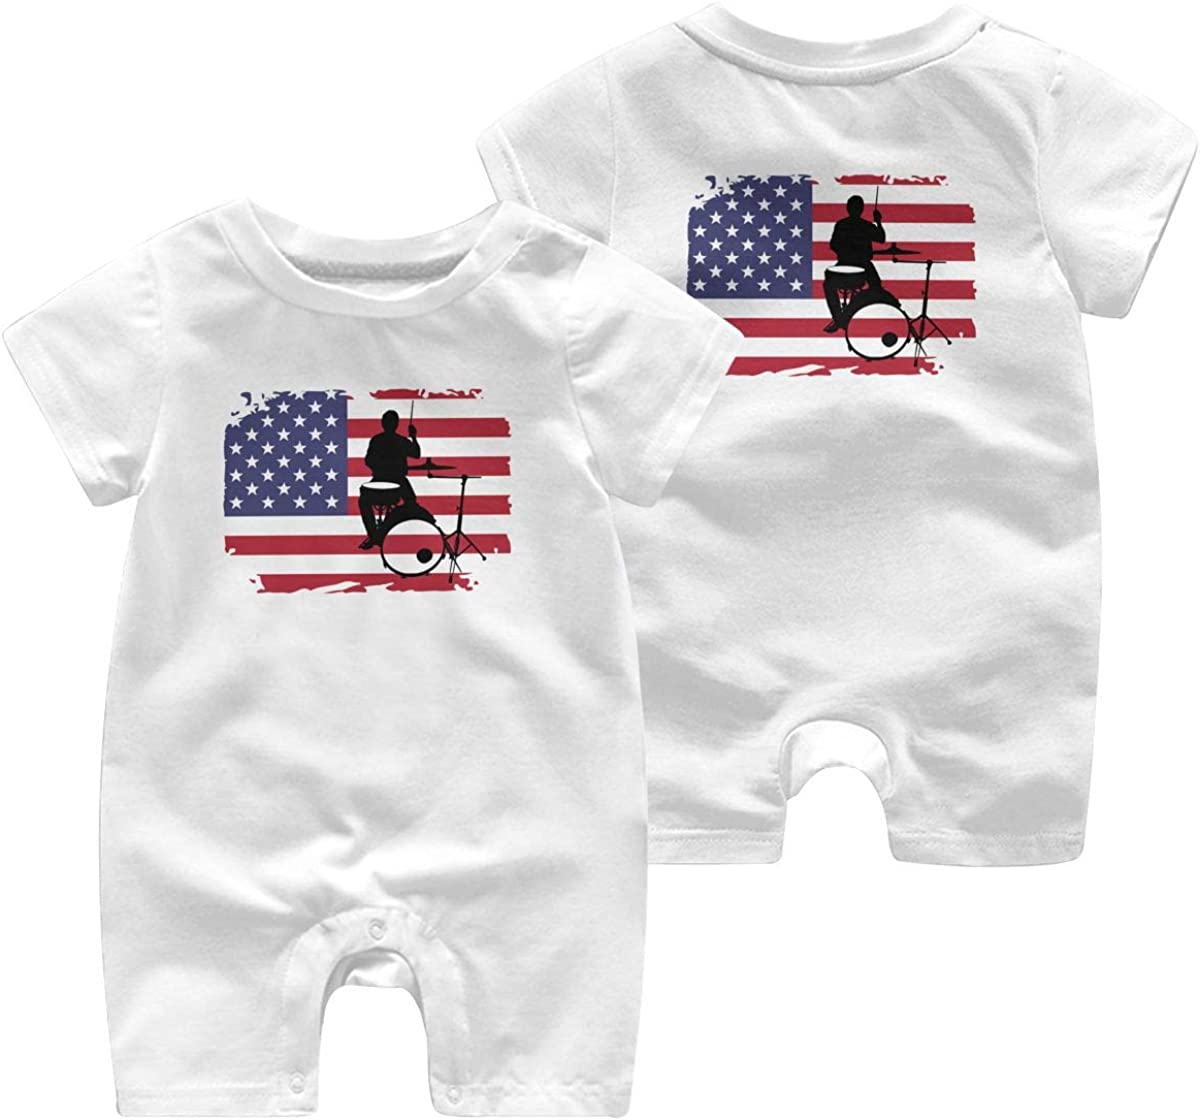 Mri-le1 Baby Girls Jumpsuit Drummer with American Flag-1 Toddler Jumpsuit